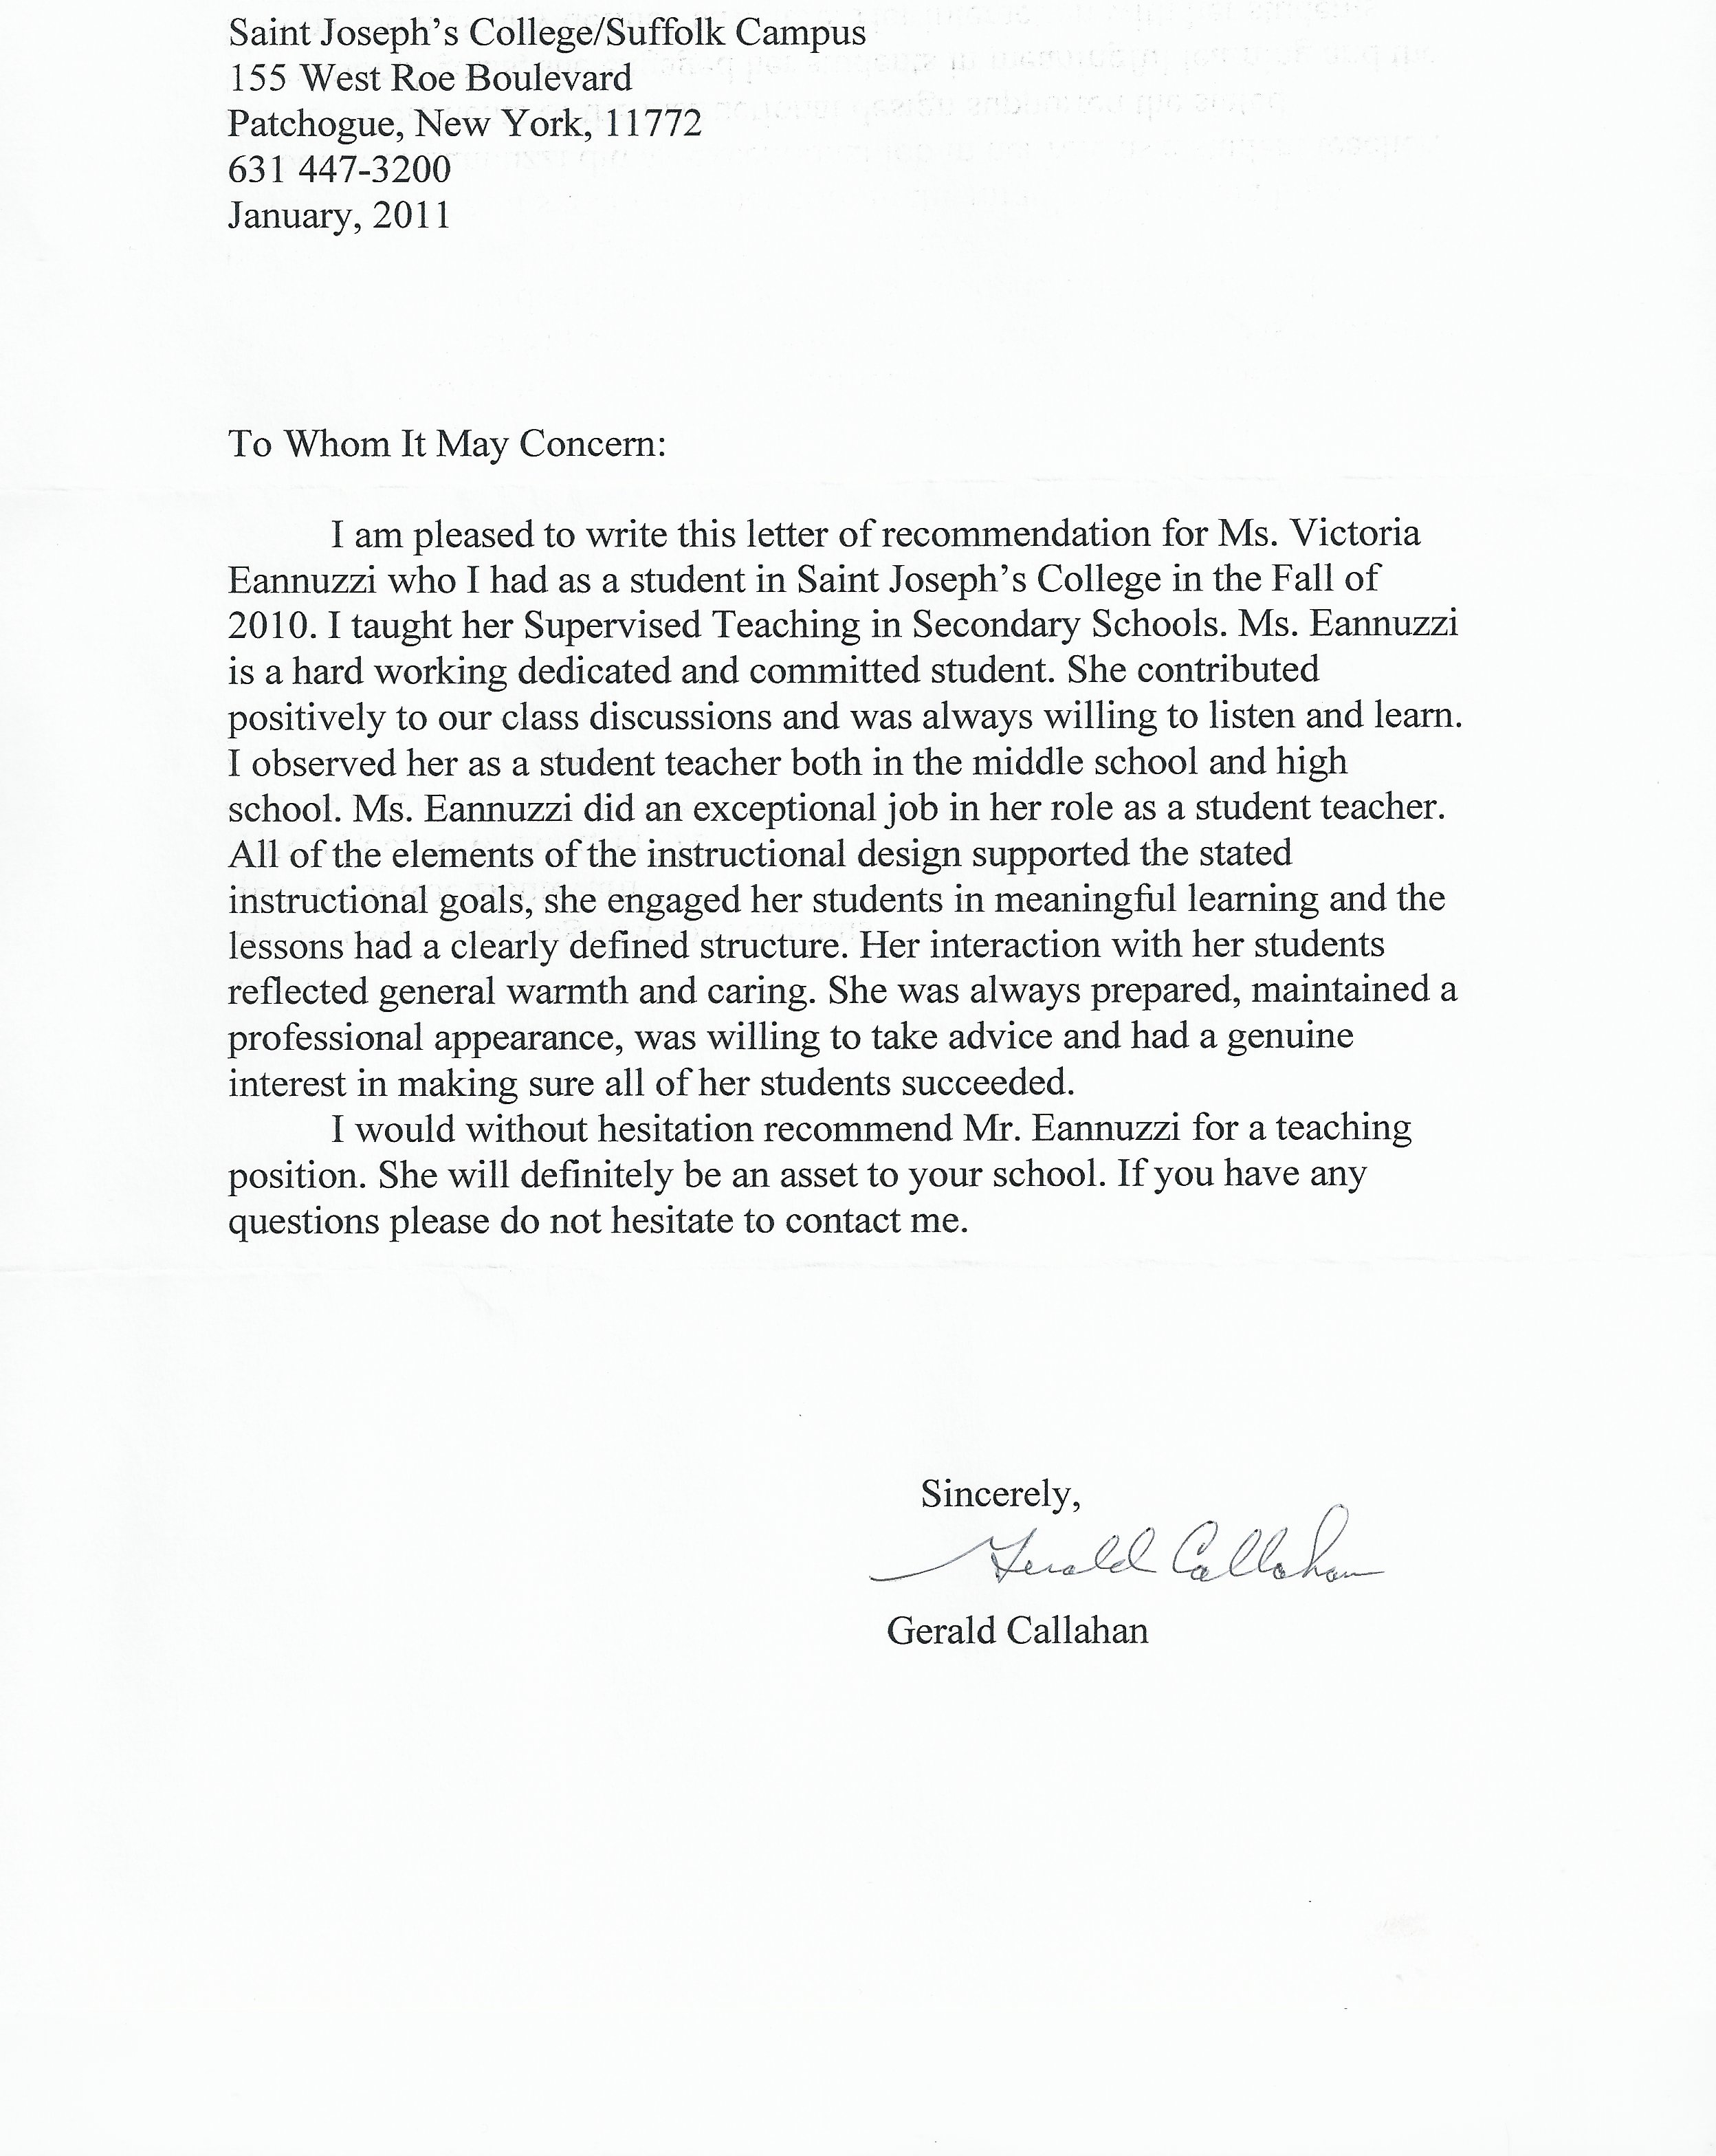 Sample Letter Of Recommendation For Coworker 5 Examples Victoria Anne Eannuzzi 171; My Teaching Portfolio